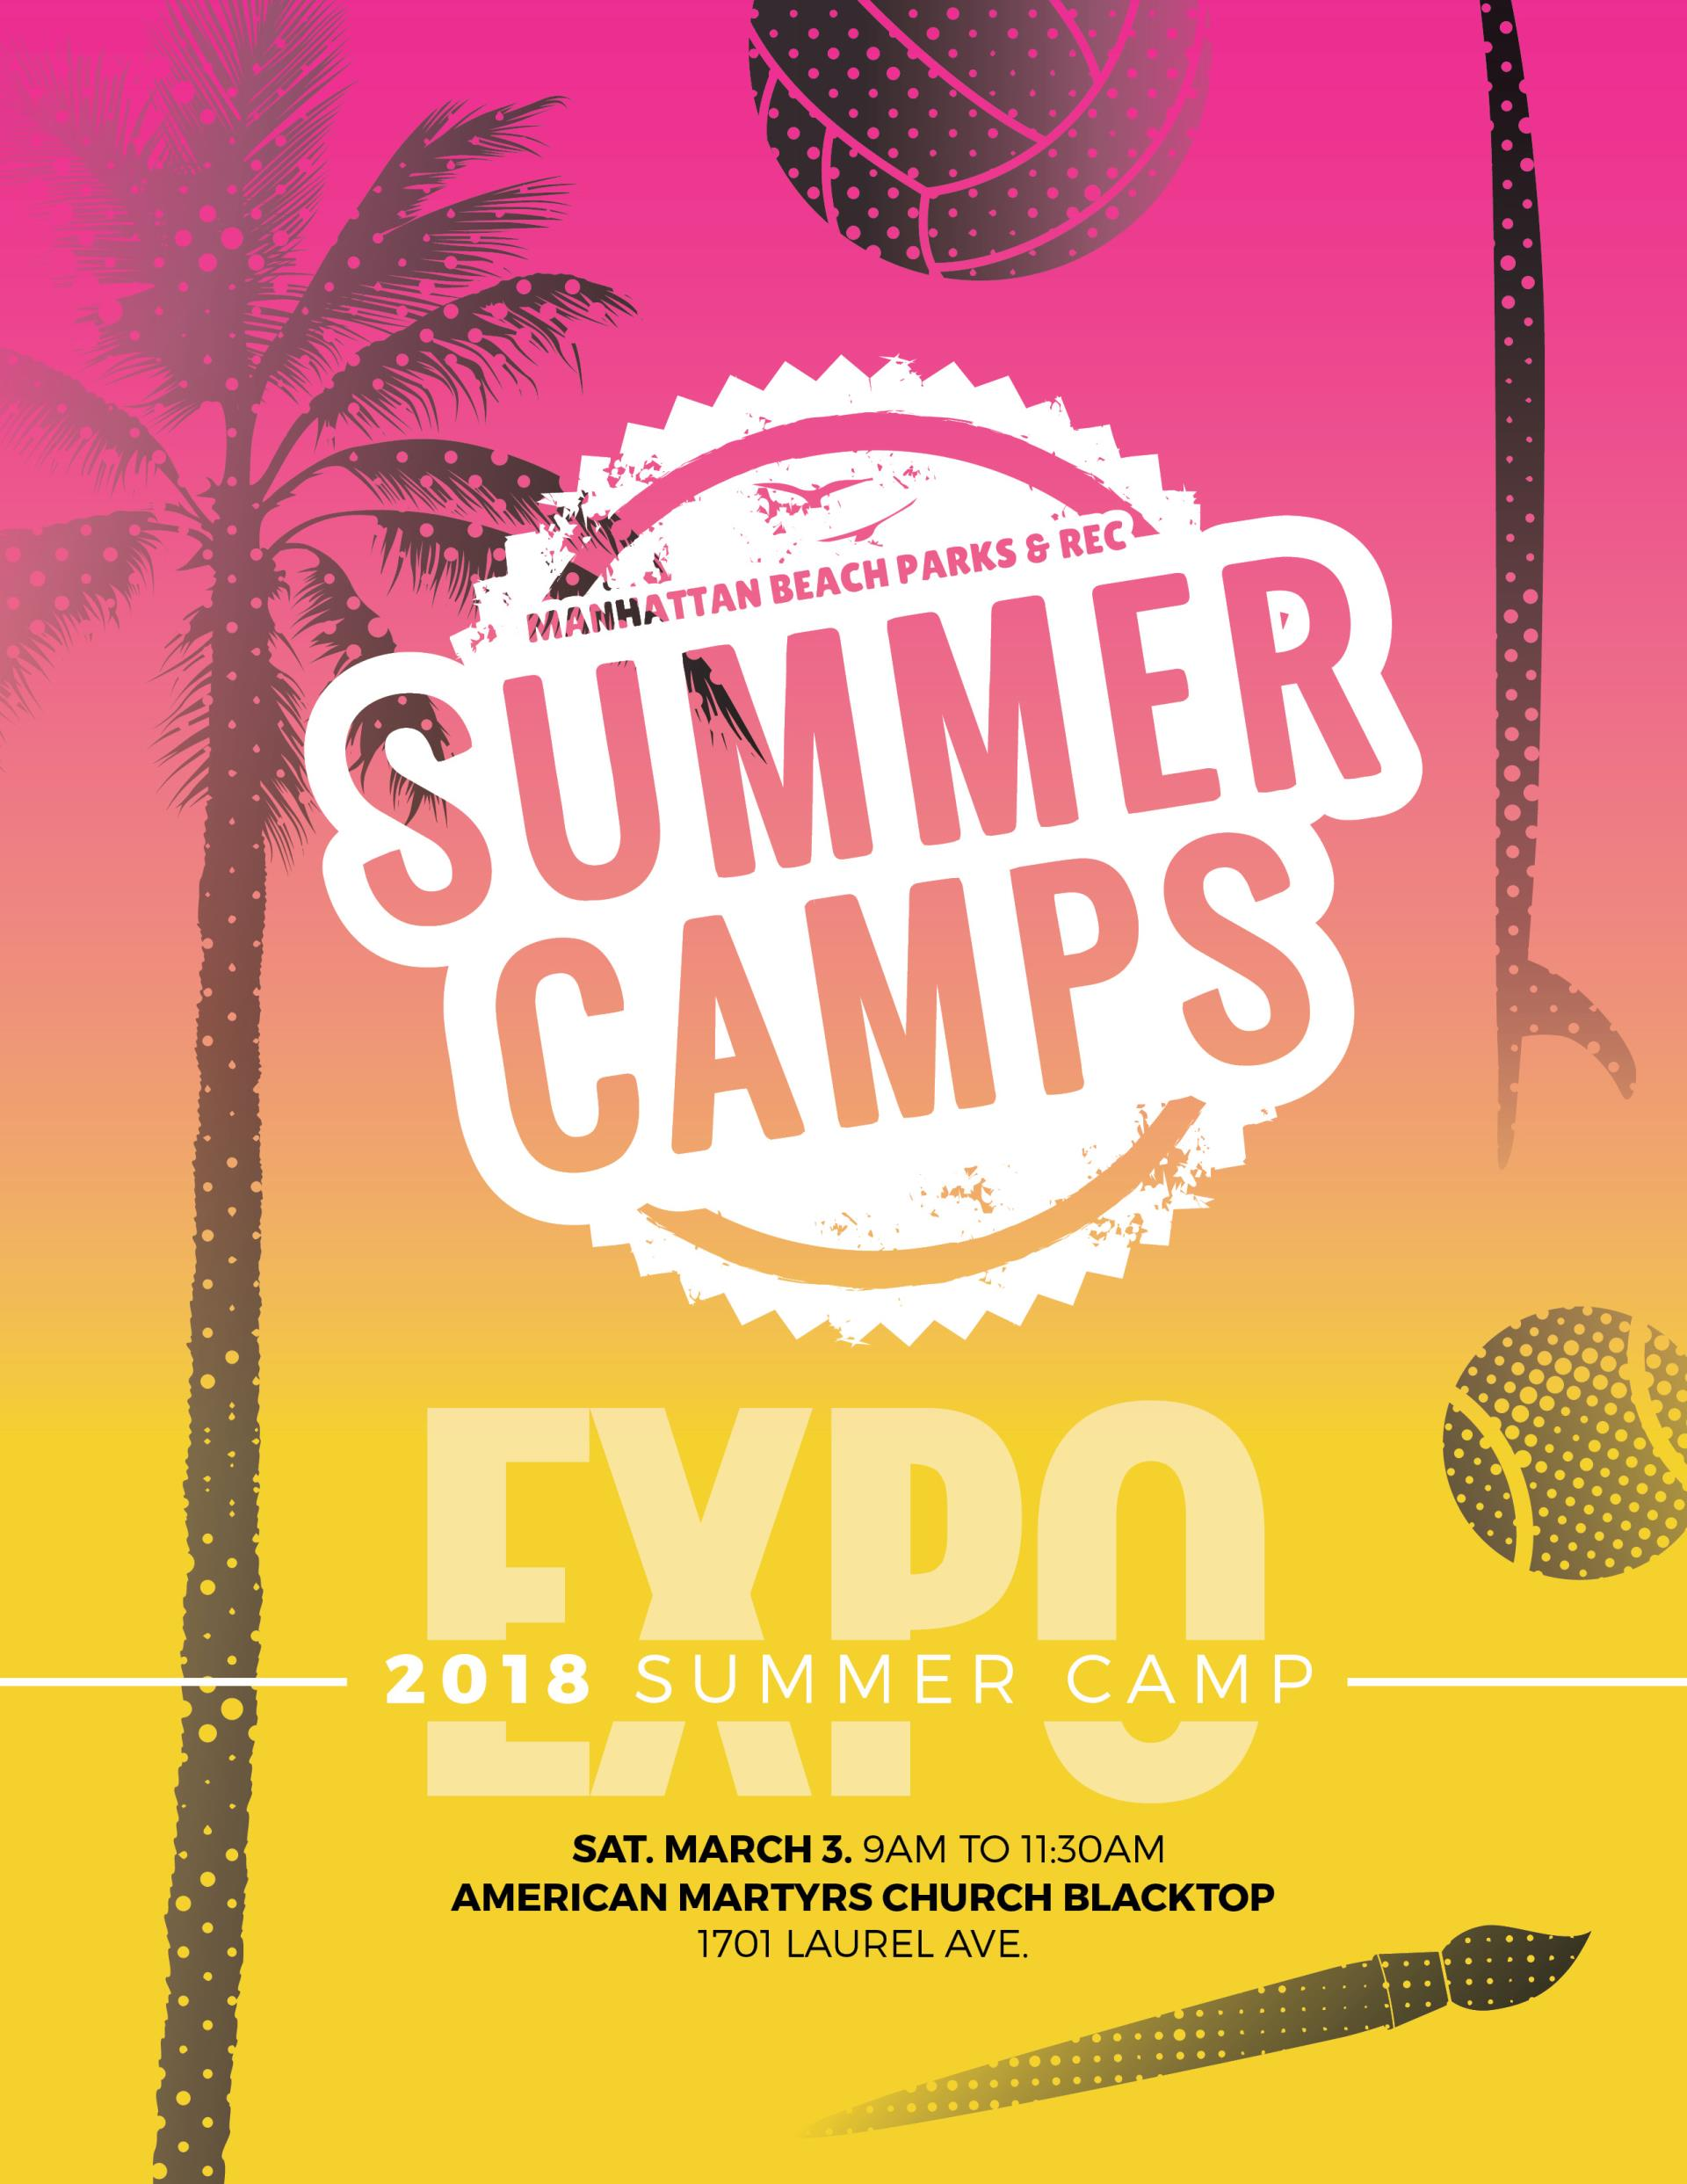 Summer Camp Expo Flyer